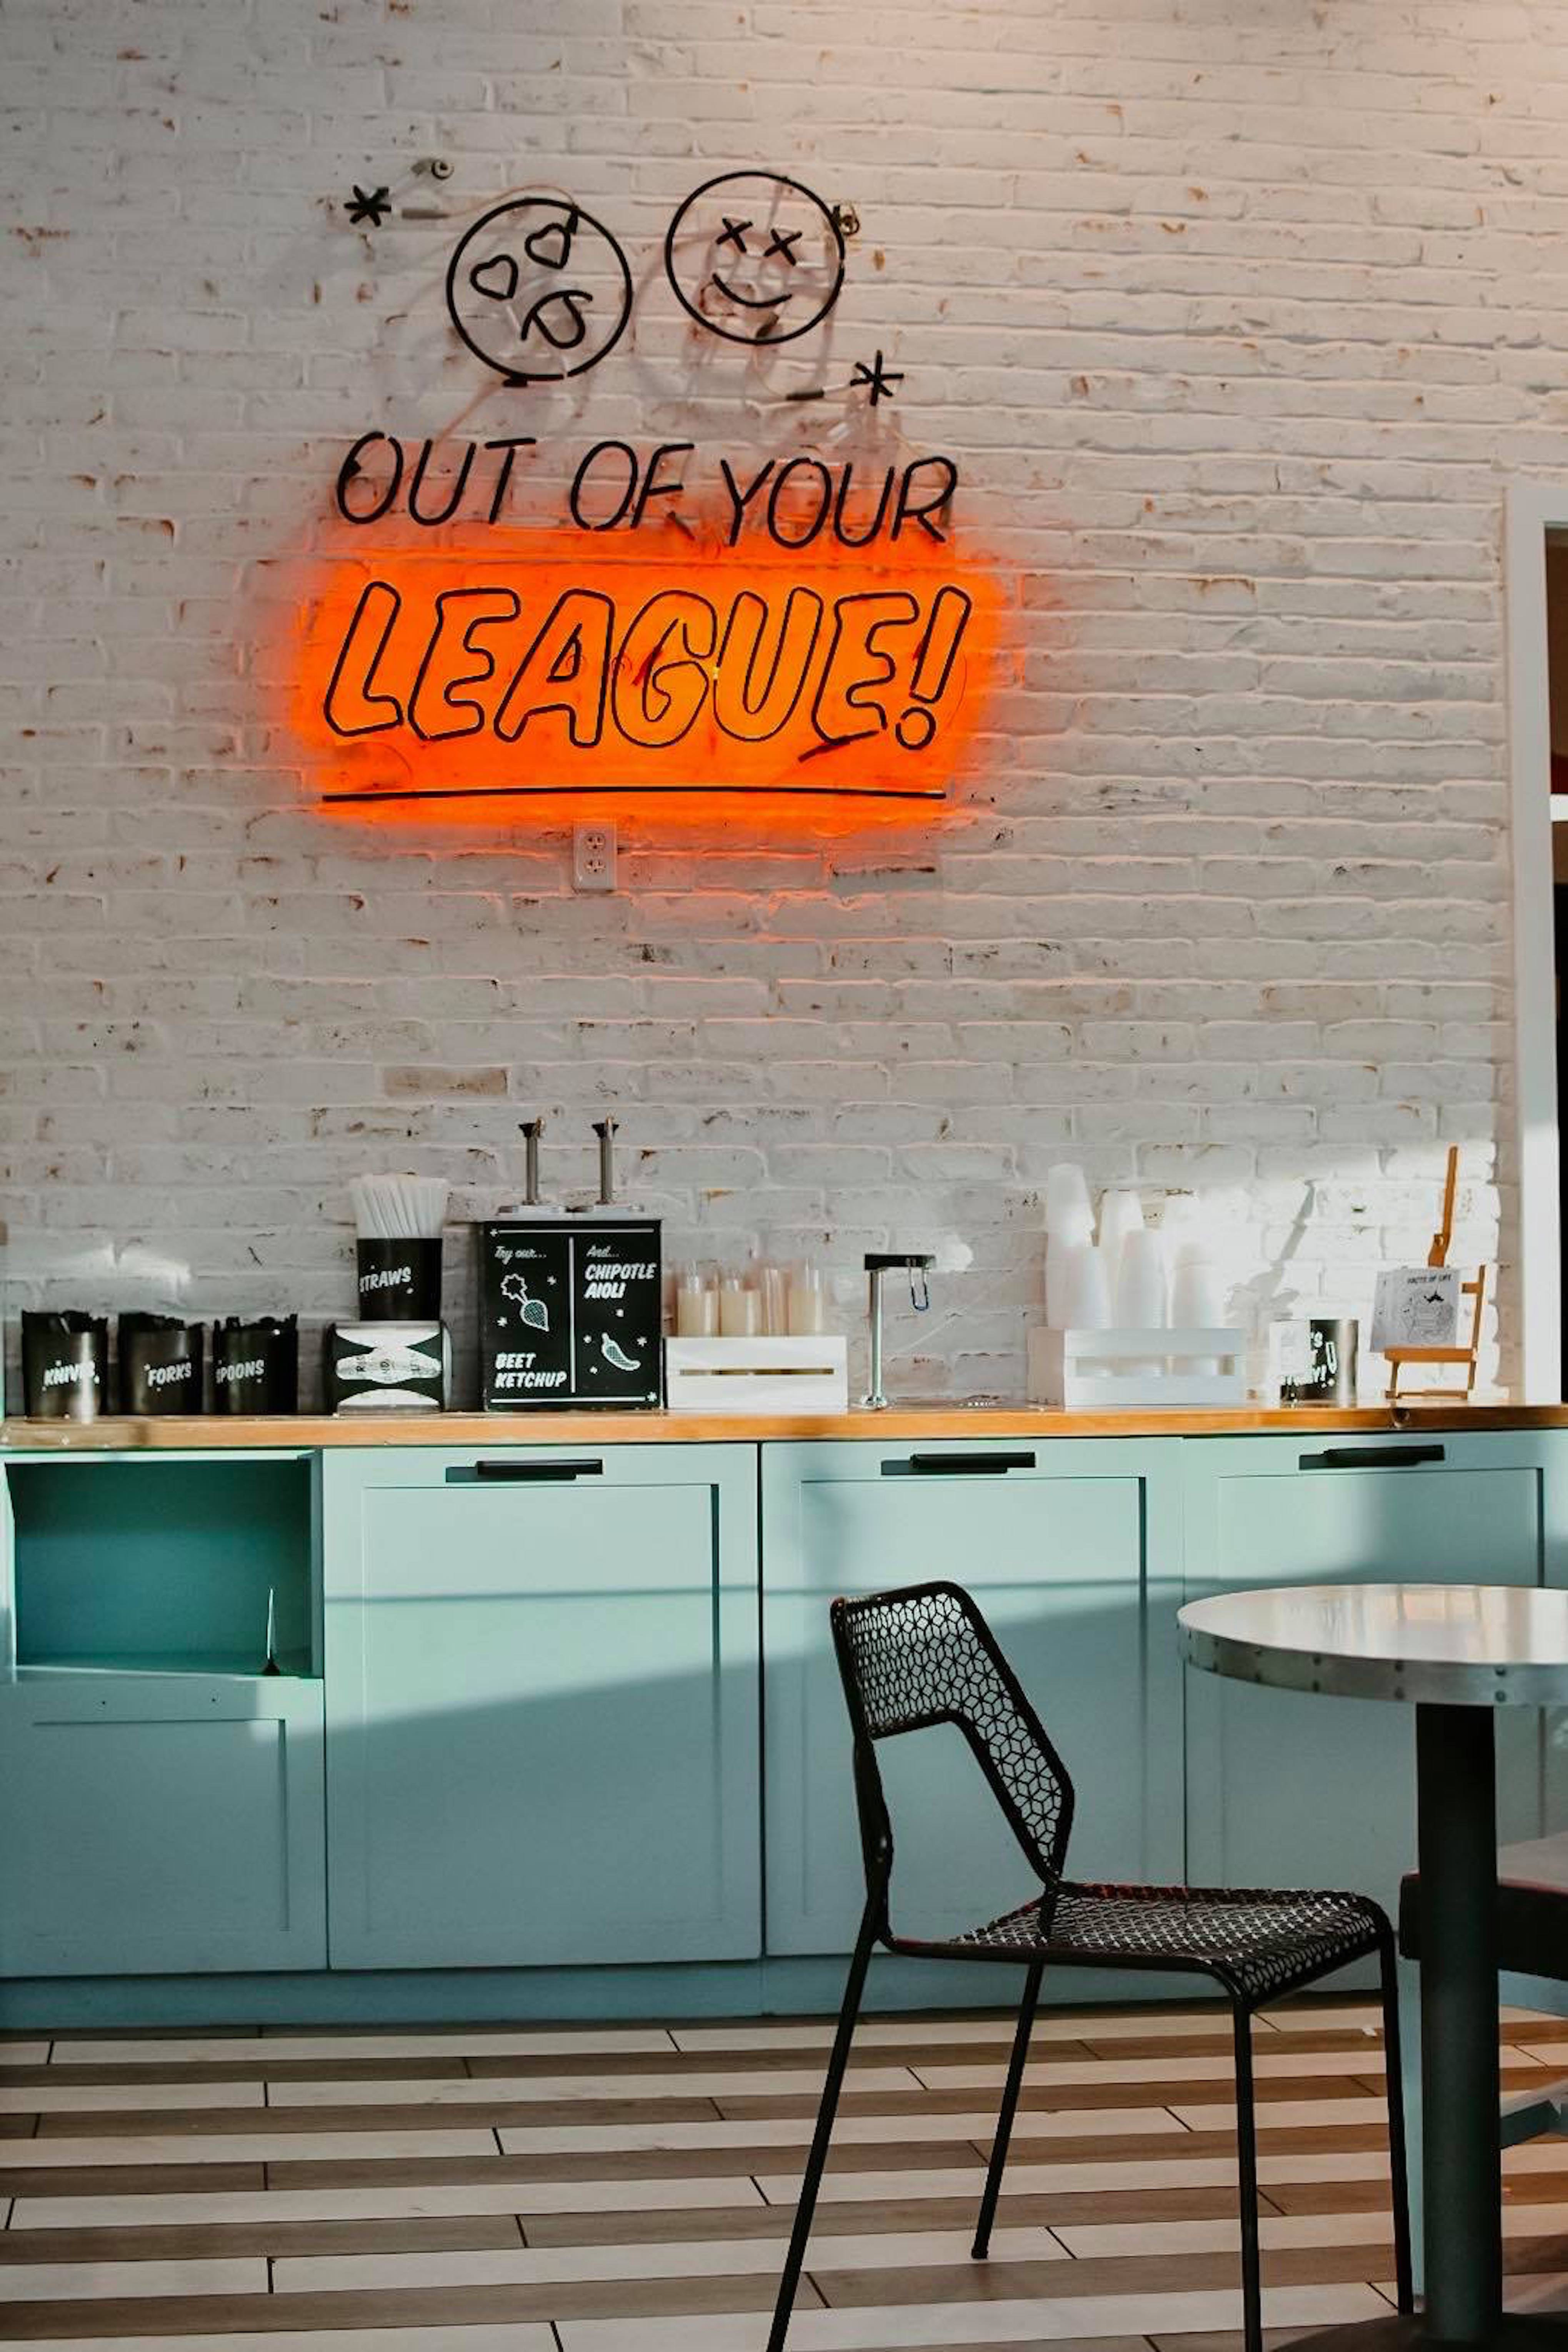 """A coffee counter with a sign """"out of your league"""" on the wall"""